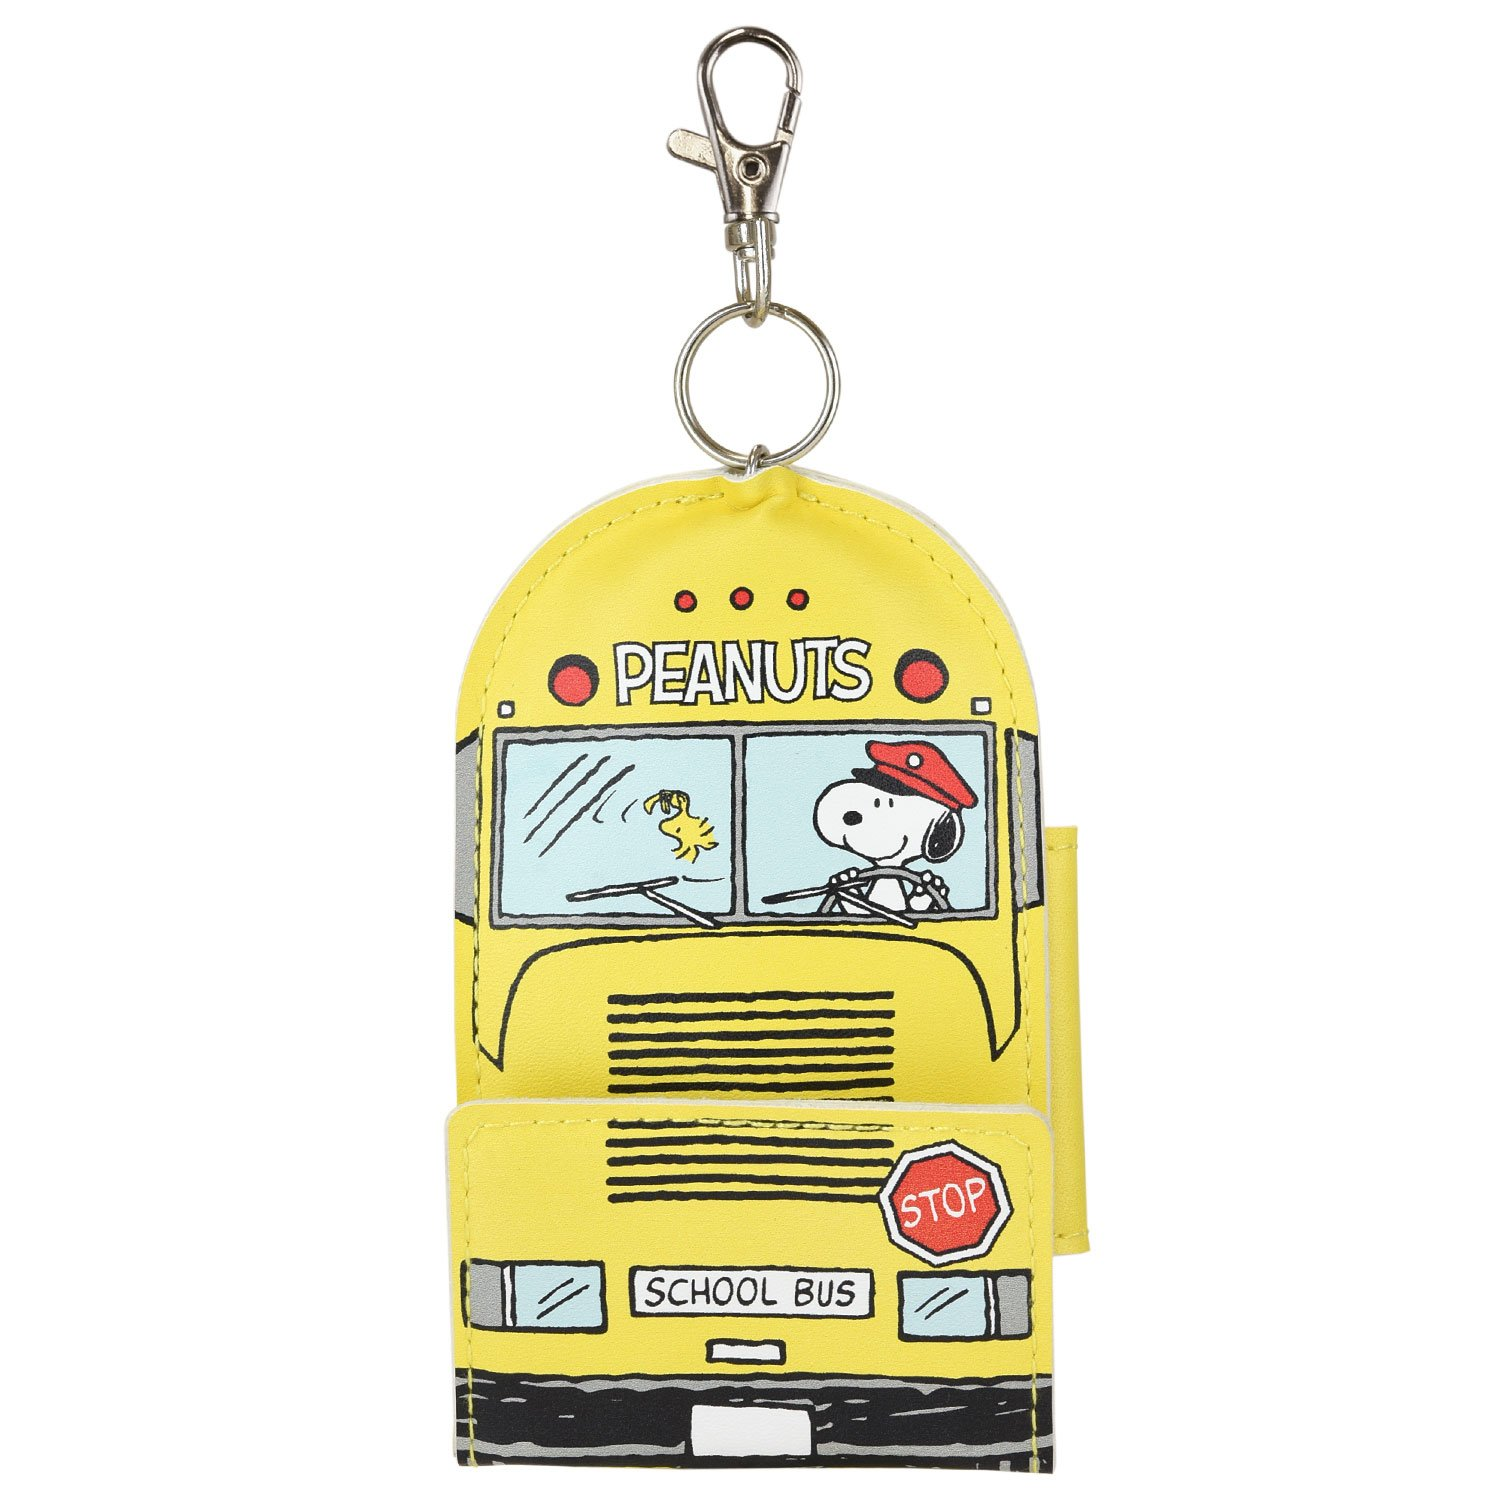 Peanuts Snoopy Smart Key Case Pouch School Bus Yellow sng-188b